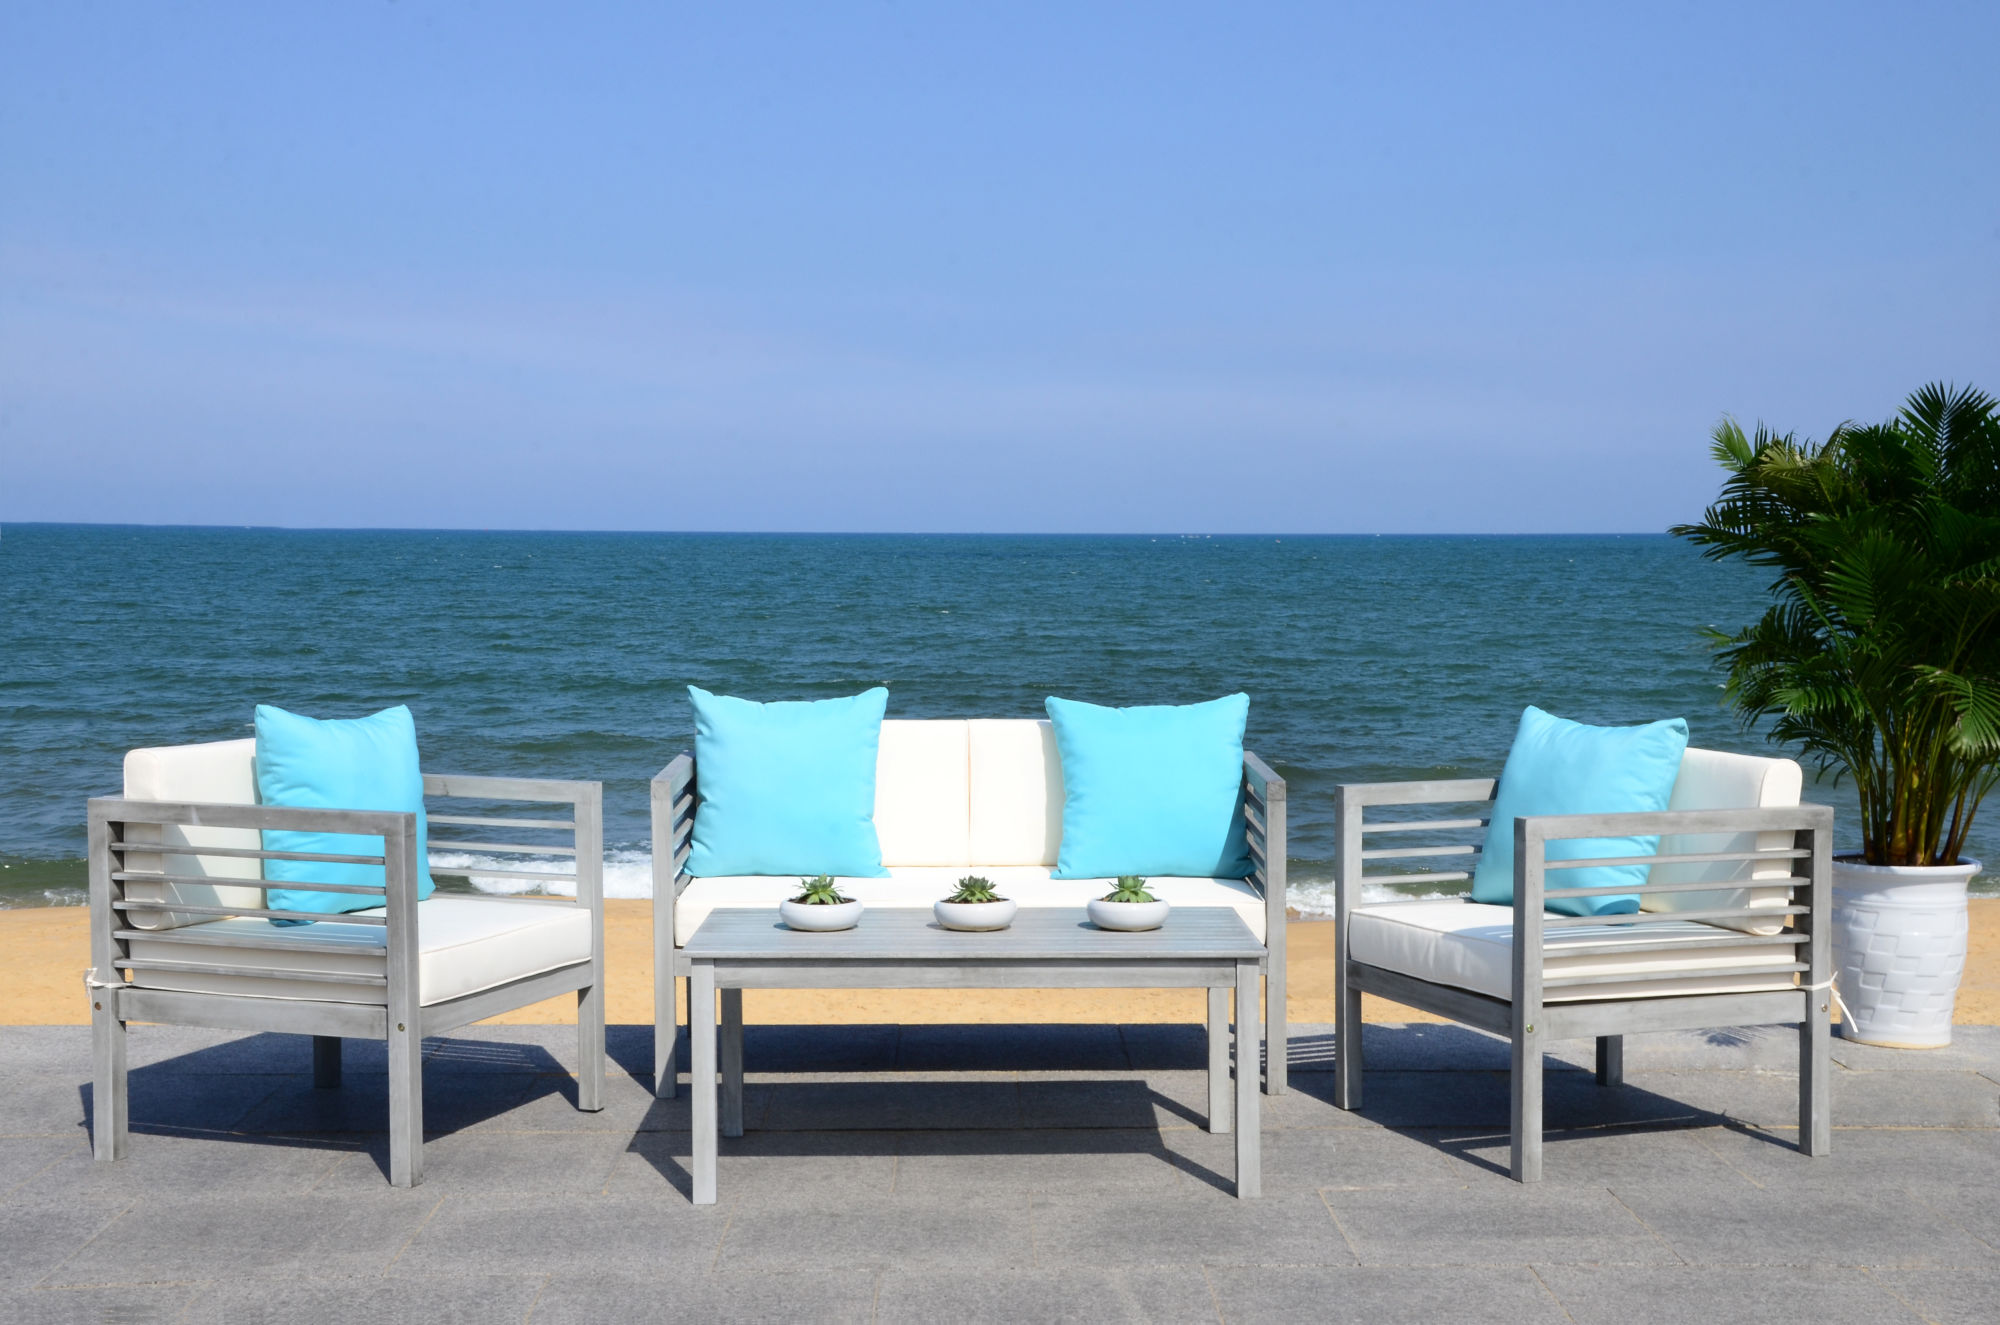 Alda 4 Pc Outdoor Set With Accent Pillows on Safavieh Alda 4Pc Outdoor Set id=41520